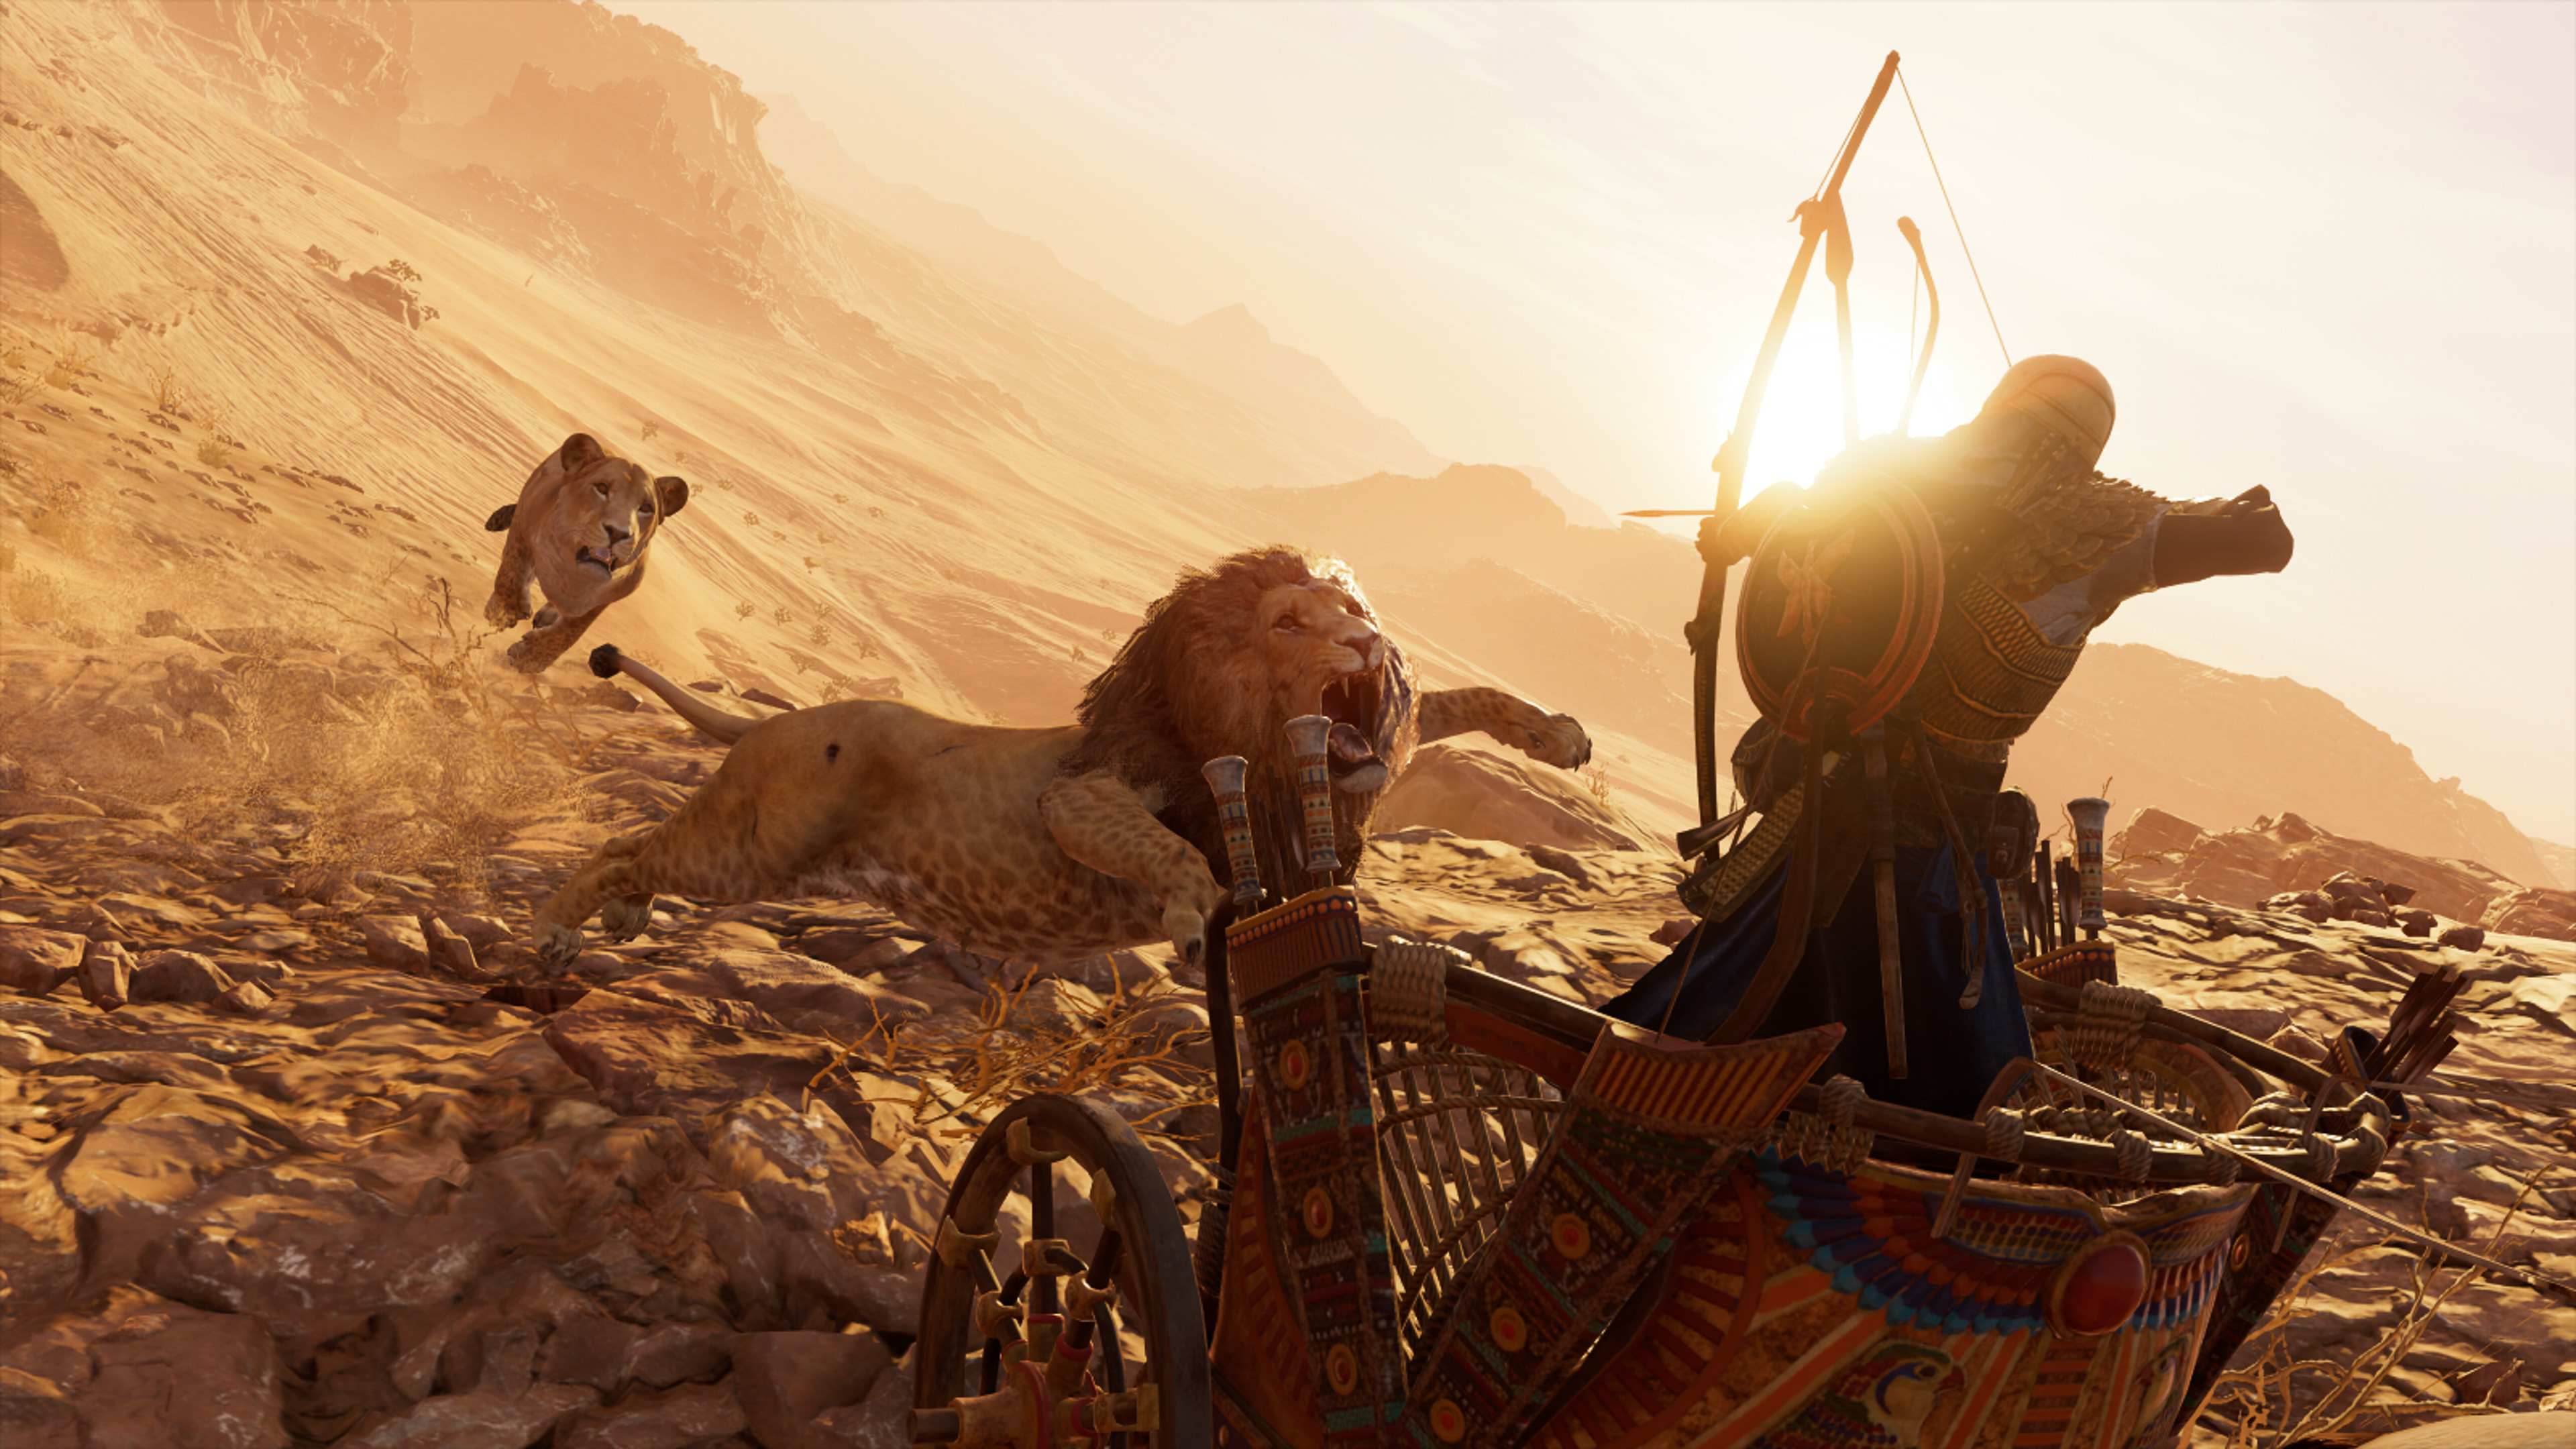 1600x900 Lions Assassins Creed Origins 4k 1600x900 Resolution Hd